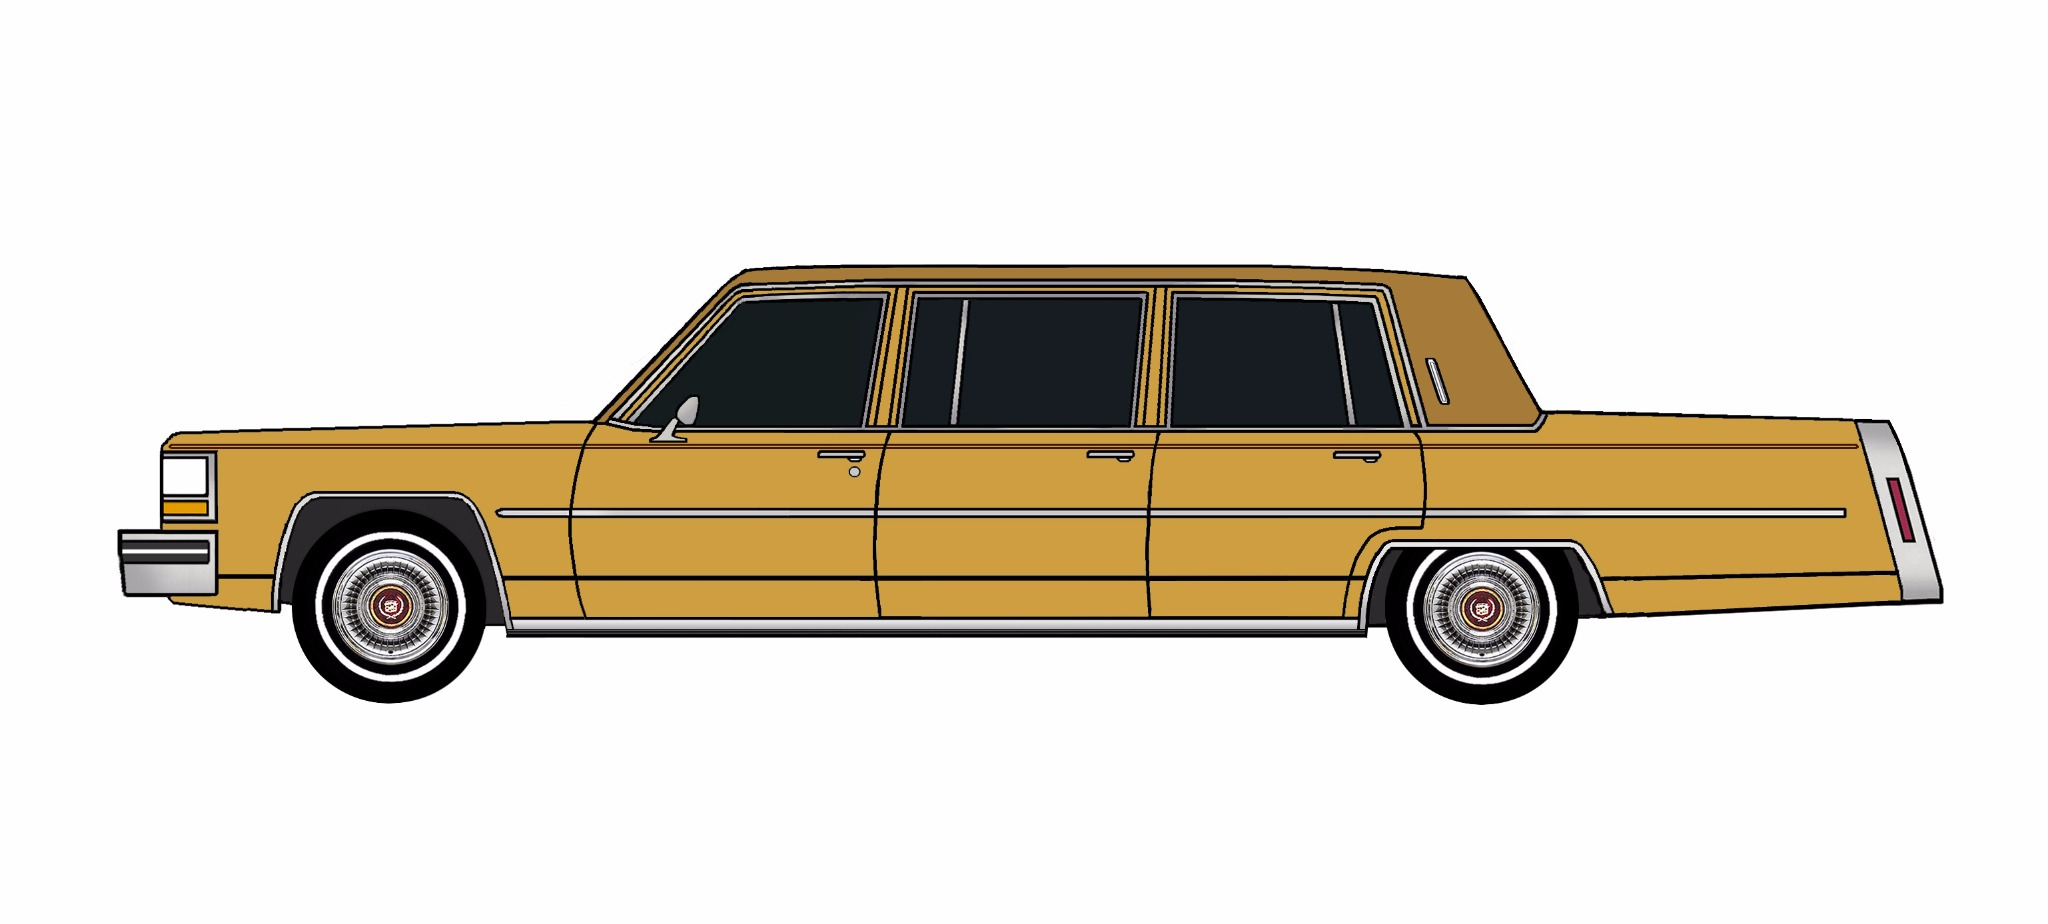 1981 Cadillac Fleetwood Funeral Limo INDIAN YELLOW